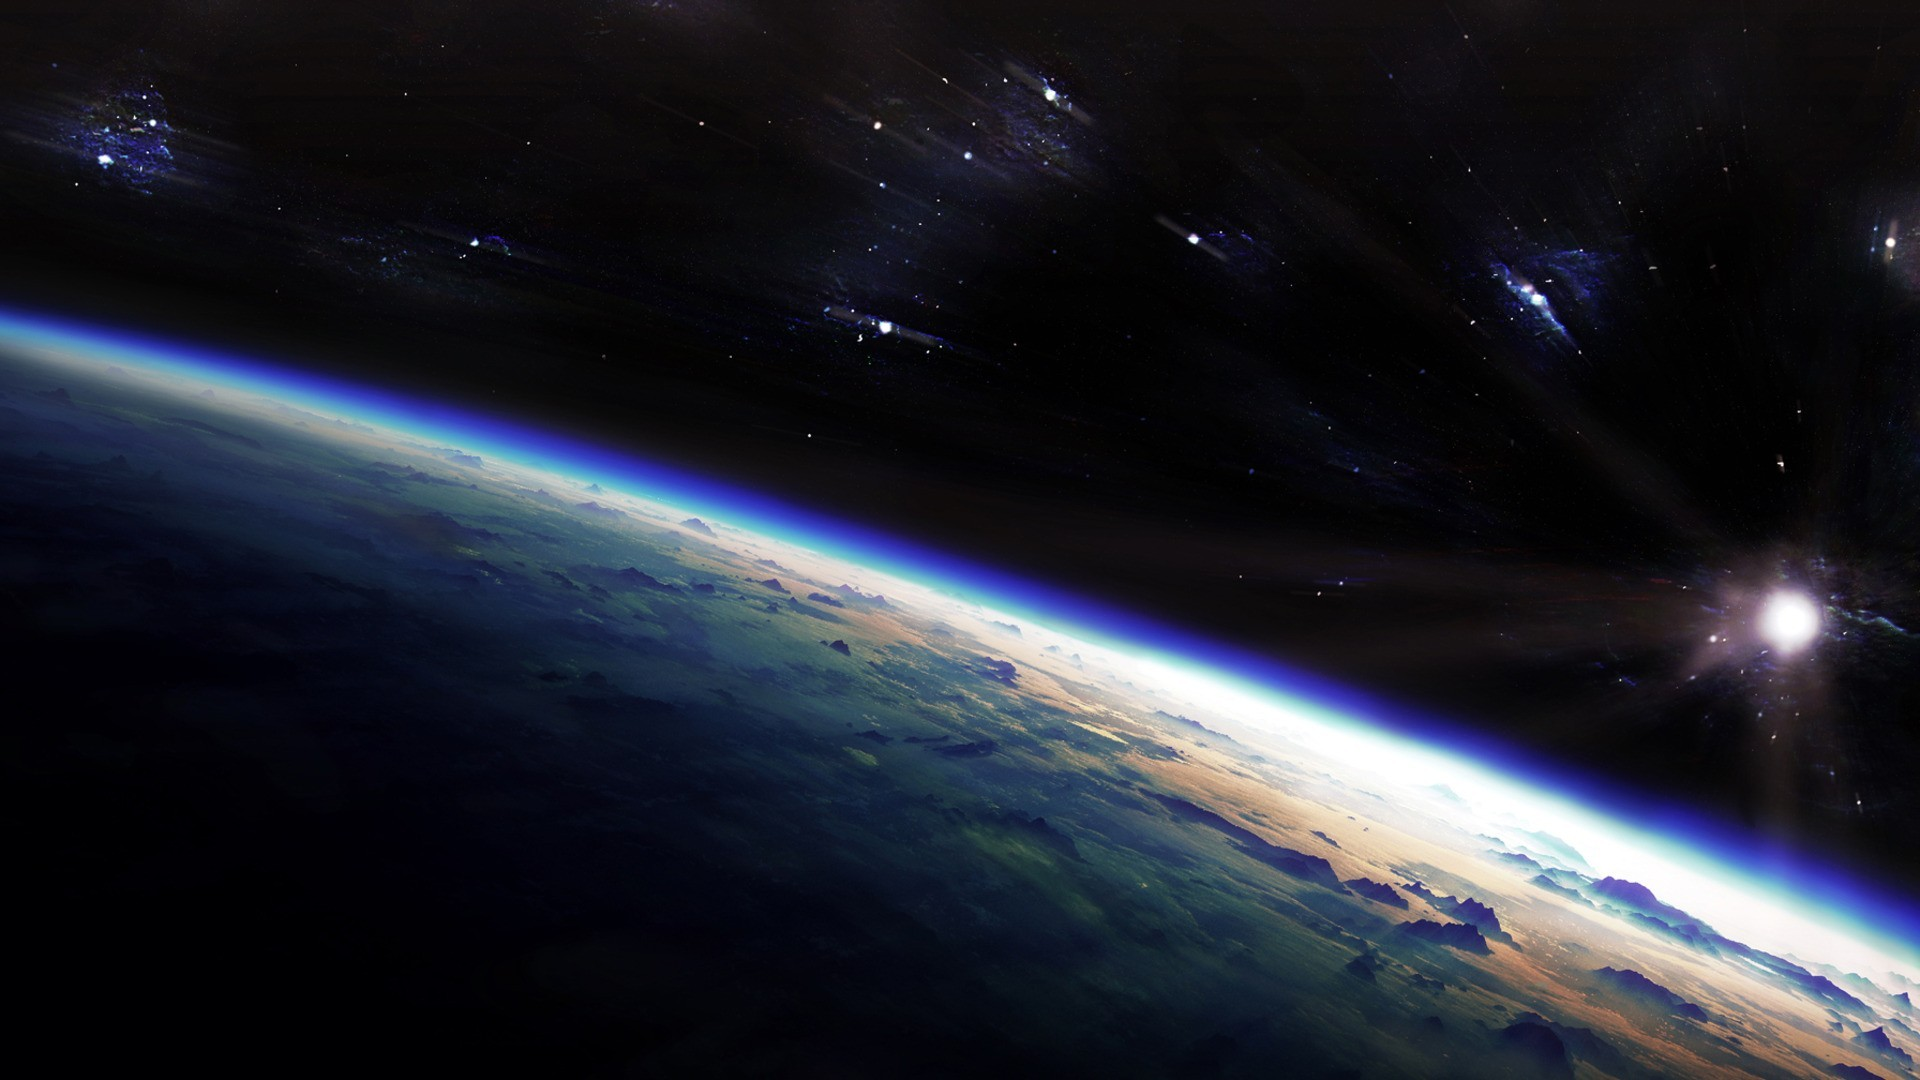 Surface of the planet wallpapers and images   download wallpapers 1920x1080